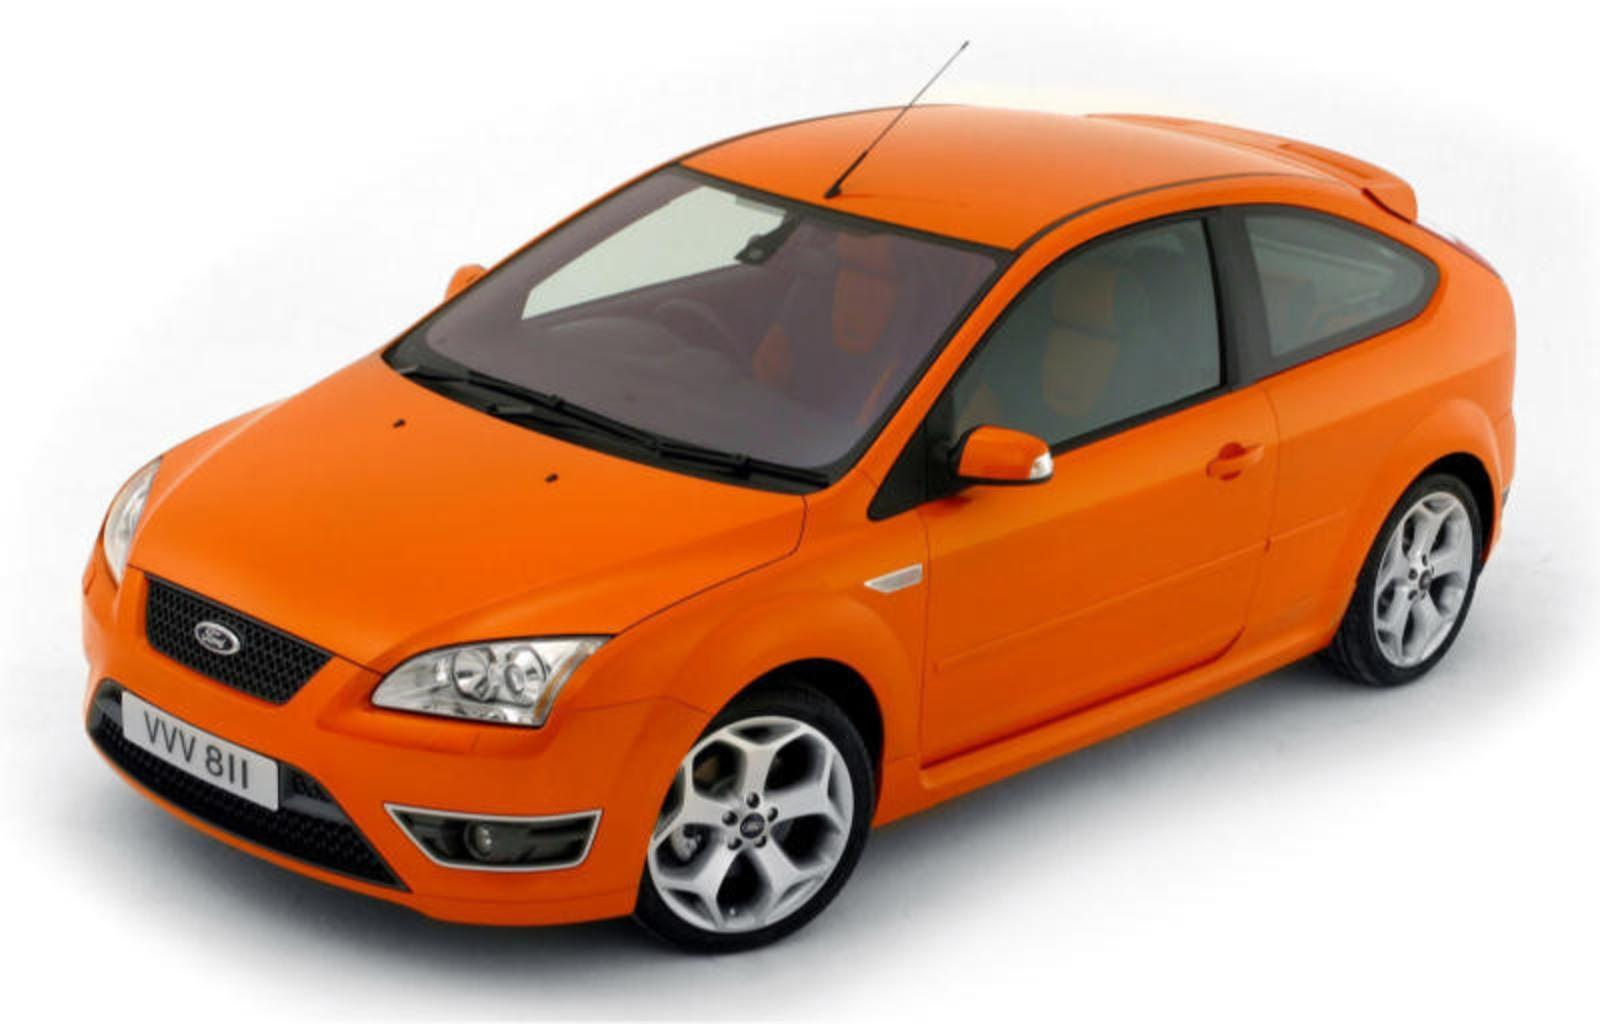 Focus St 0 60 >> 2006 Ford Focus ST Review - Top Speed